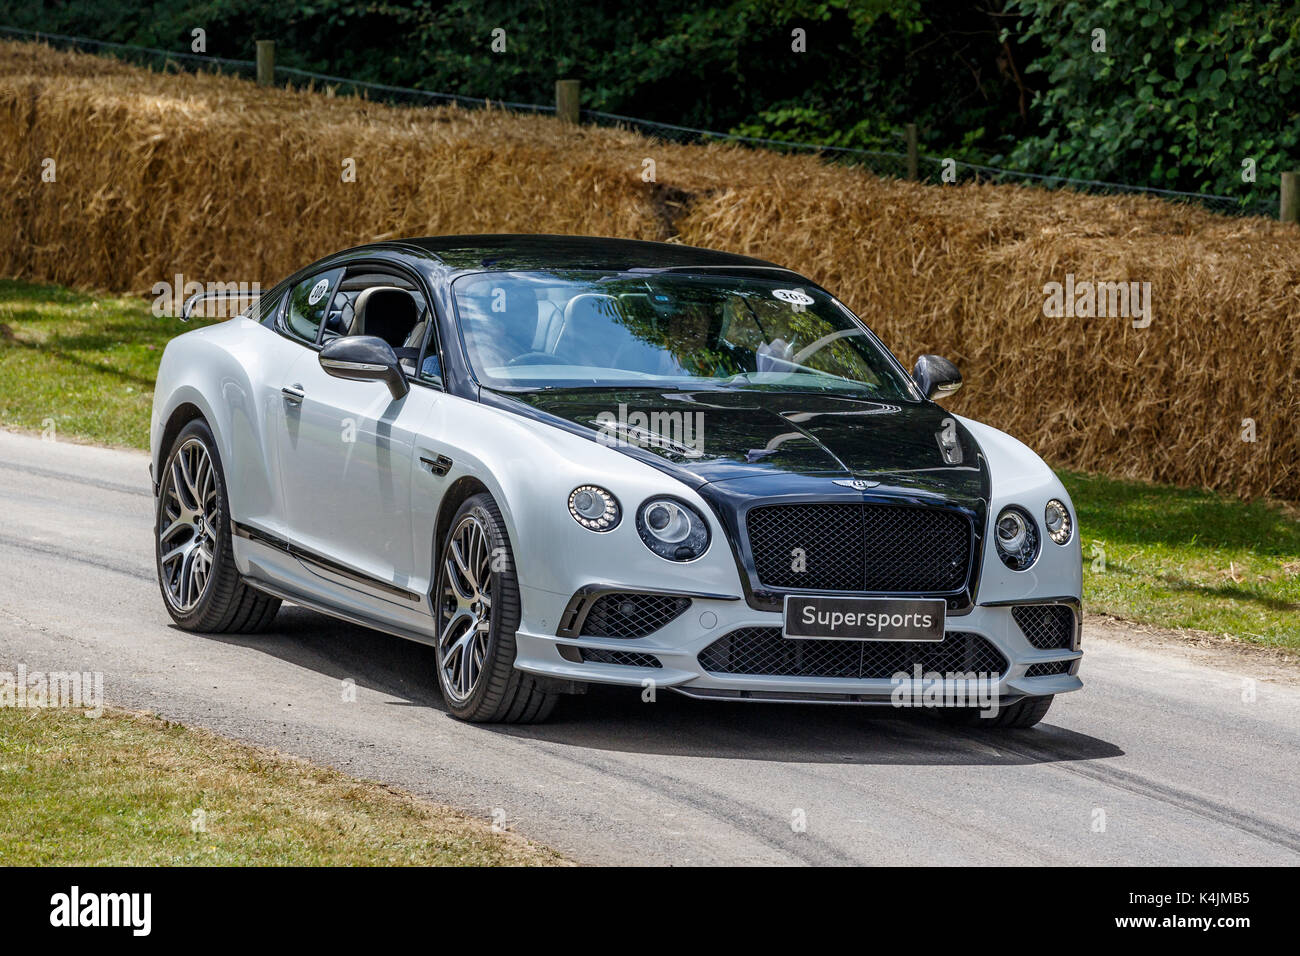 2017 Bentley Continental GT Supersports at the 2017 Goodwood ...